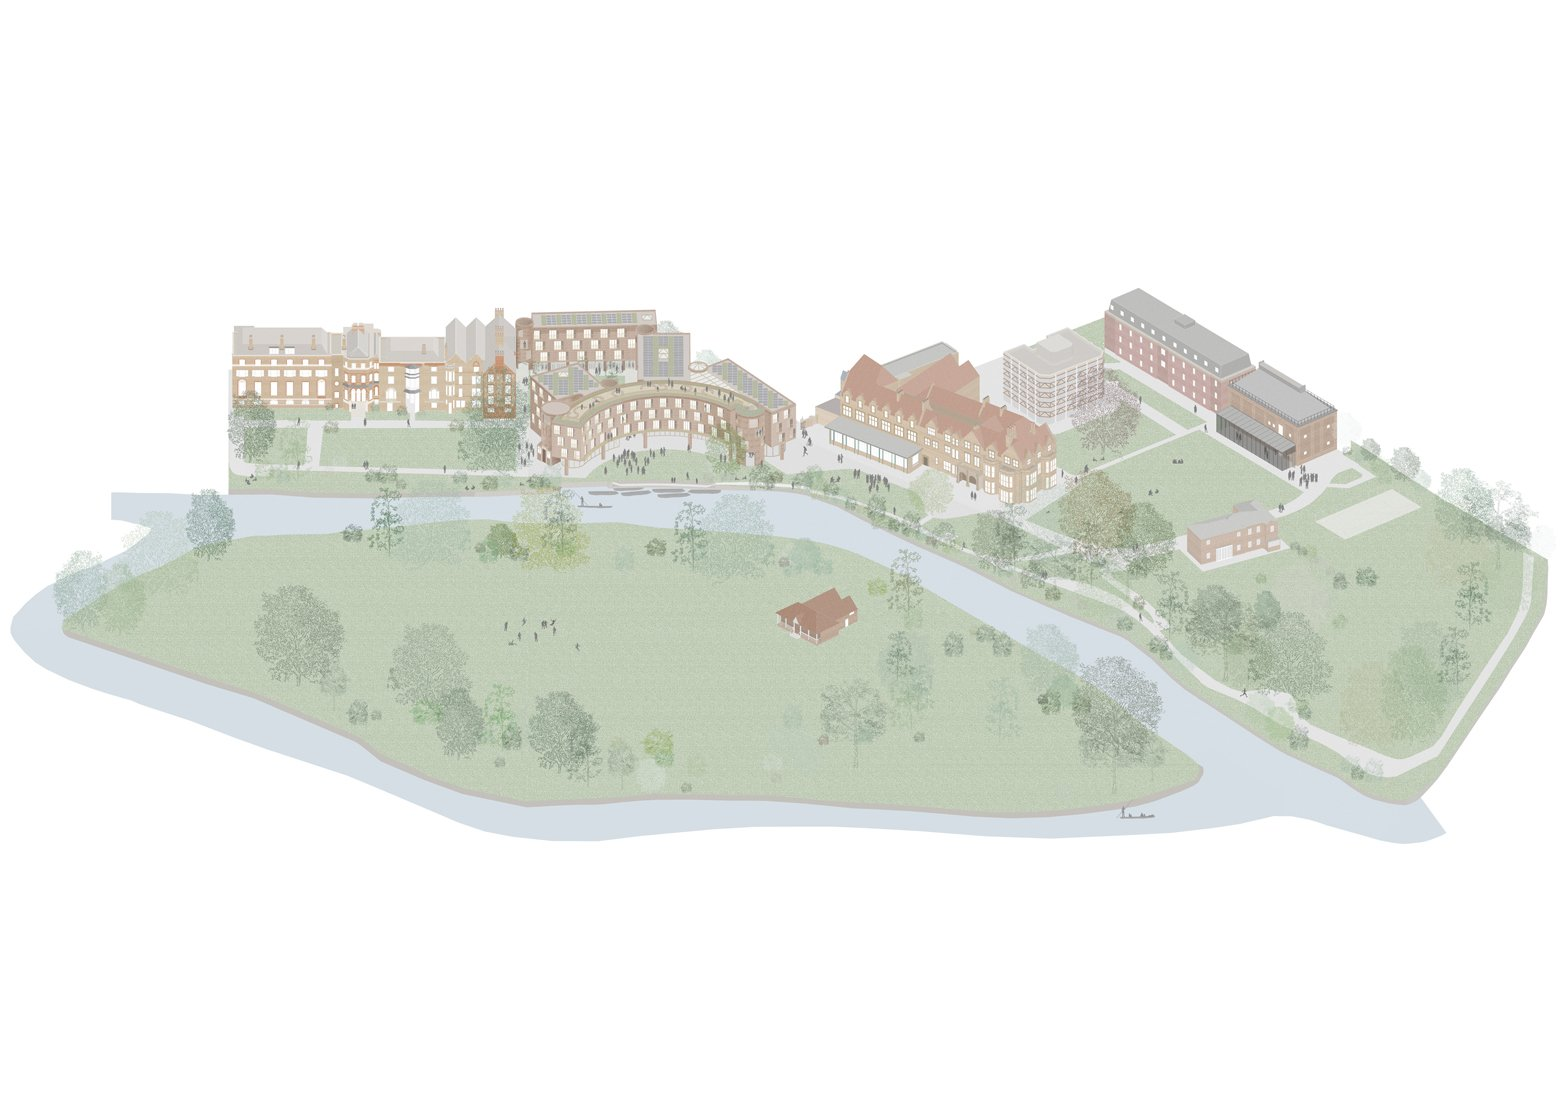 6a Architects' concept for an extension to St Hilda's College in Oxford